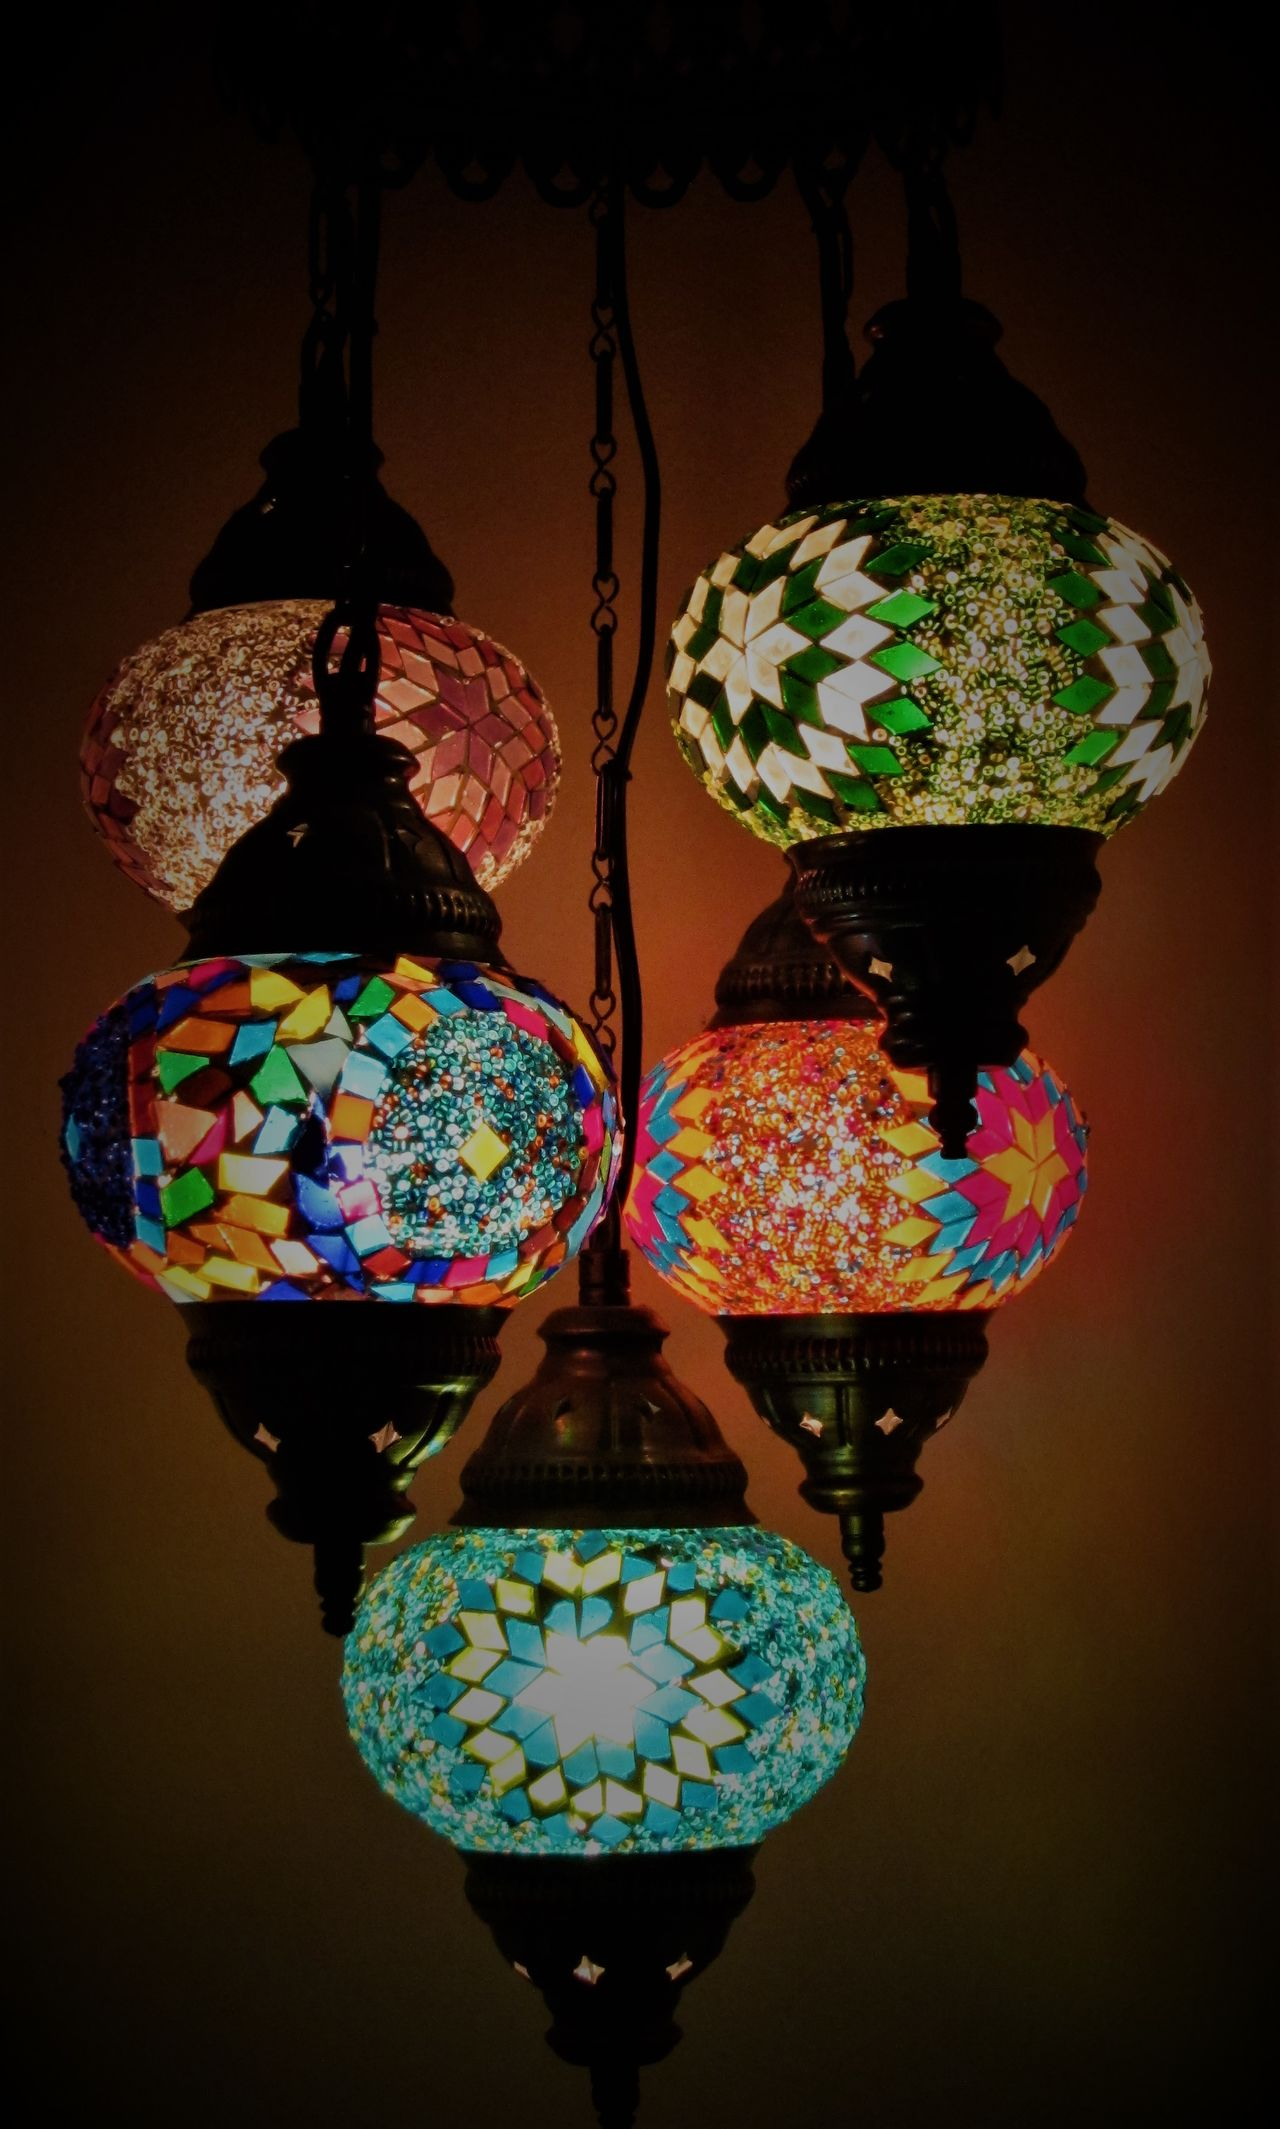 Turkish Lanterns Beauty Black Background Fashion Glass Art Hanging Lamp Lamps Lampshade Lanterns Lanterns In The Dark Multi Colored Multi Coloured No People Stained Glass Turkish Turkish Lamps Turkish Style  Variation